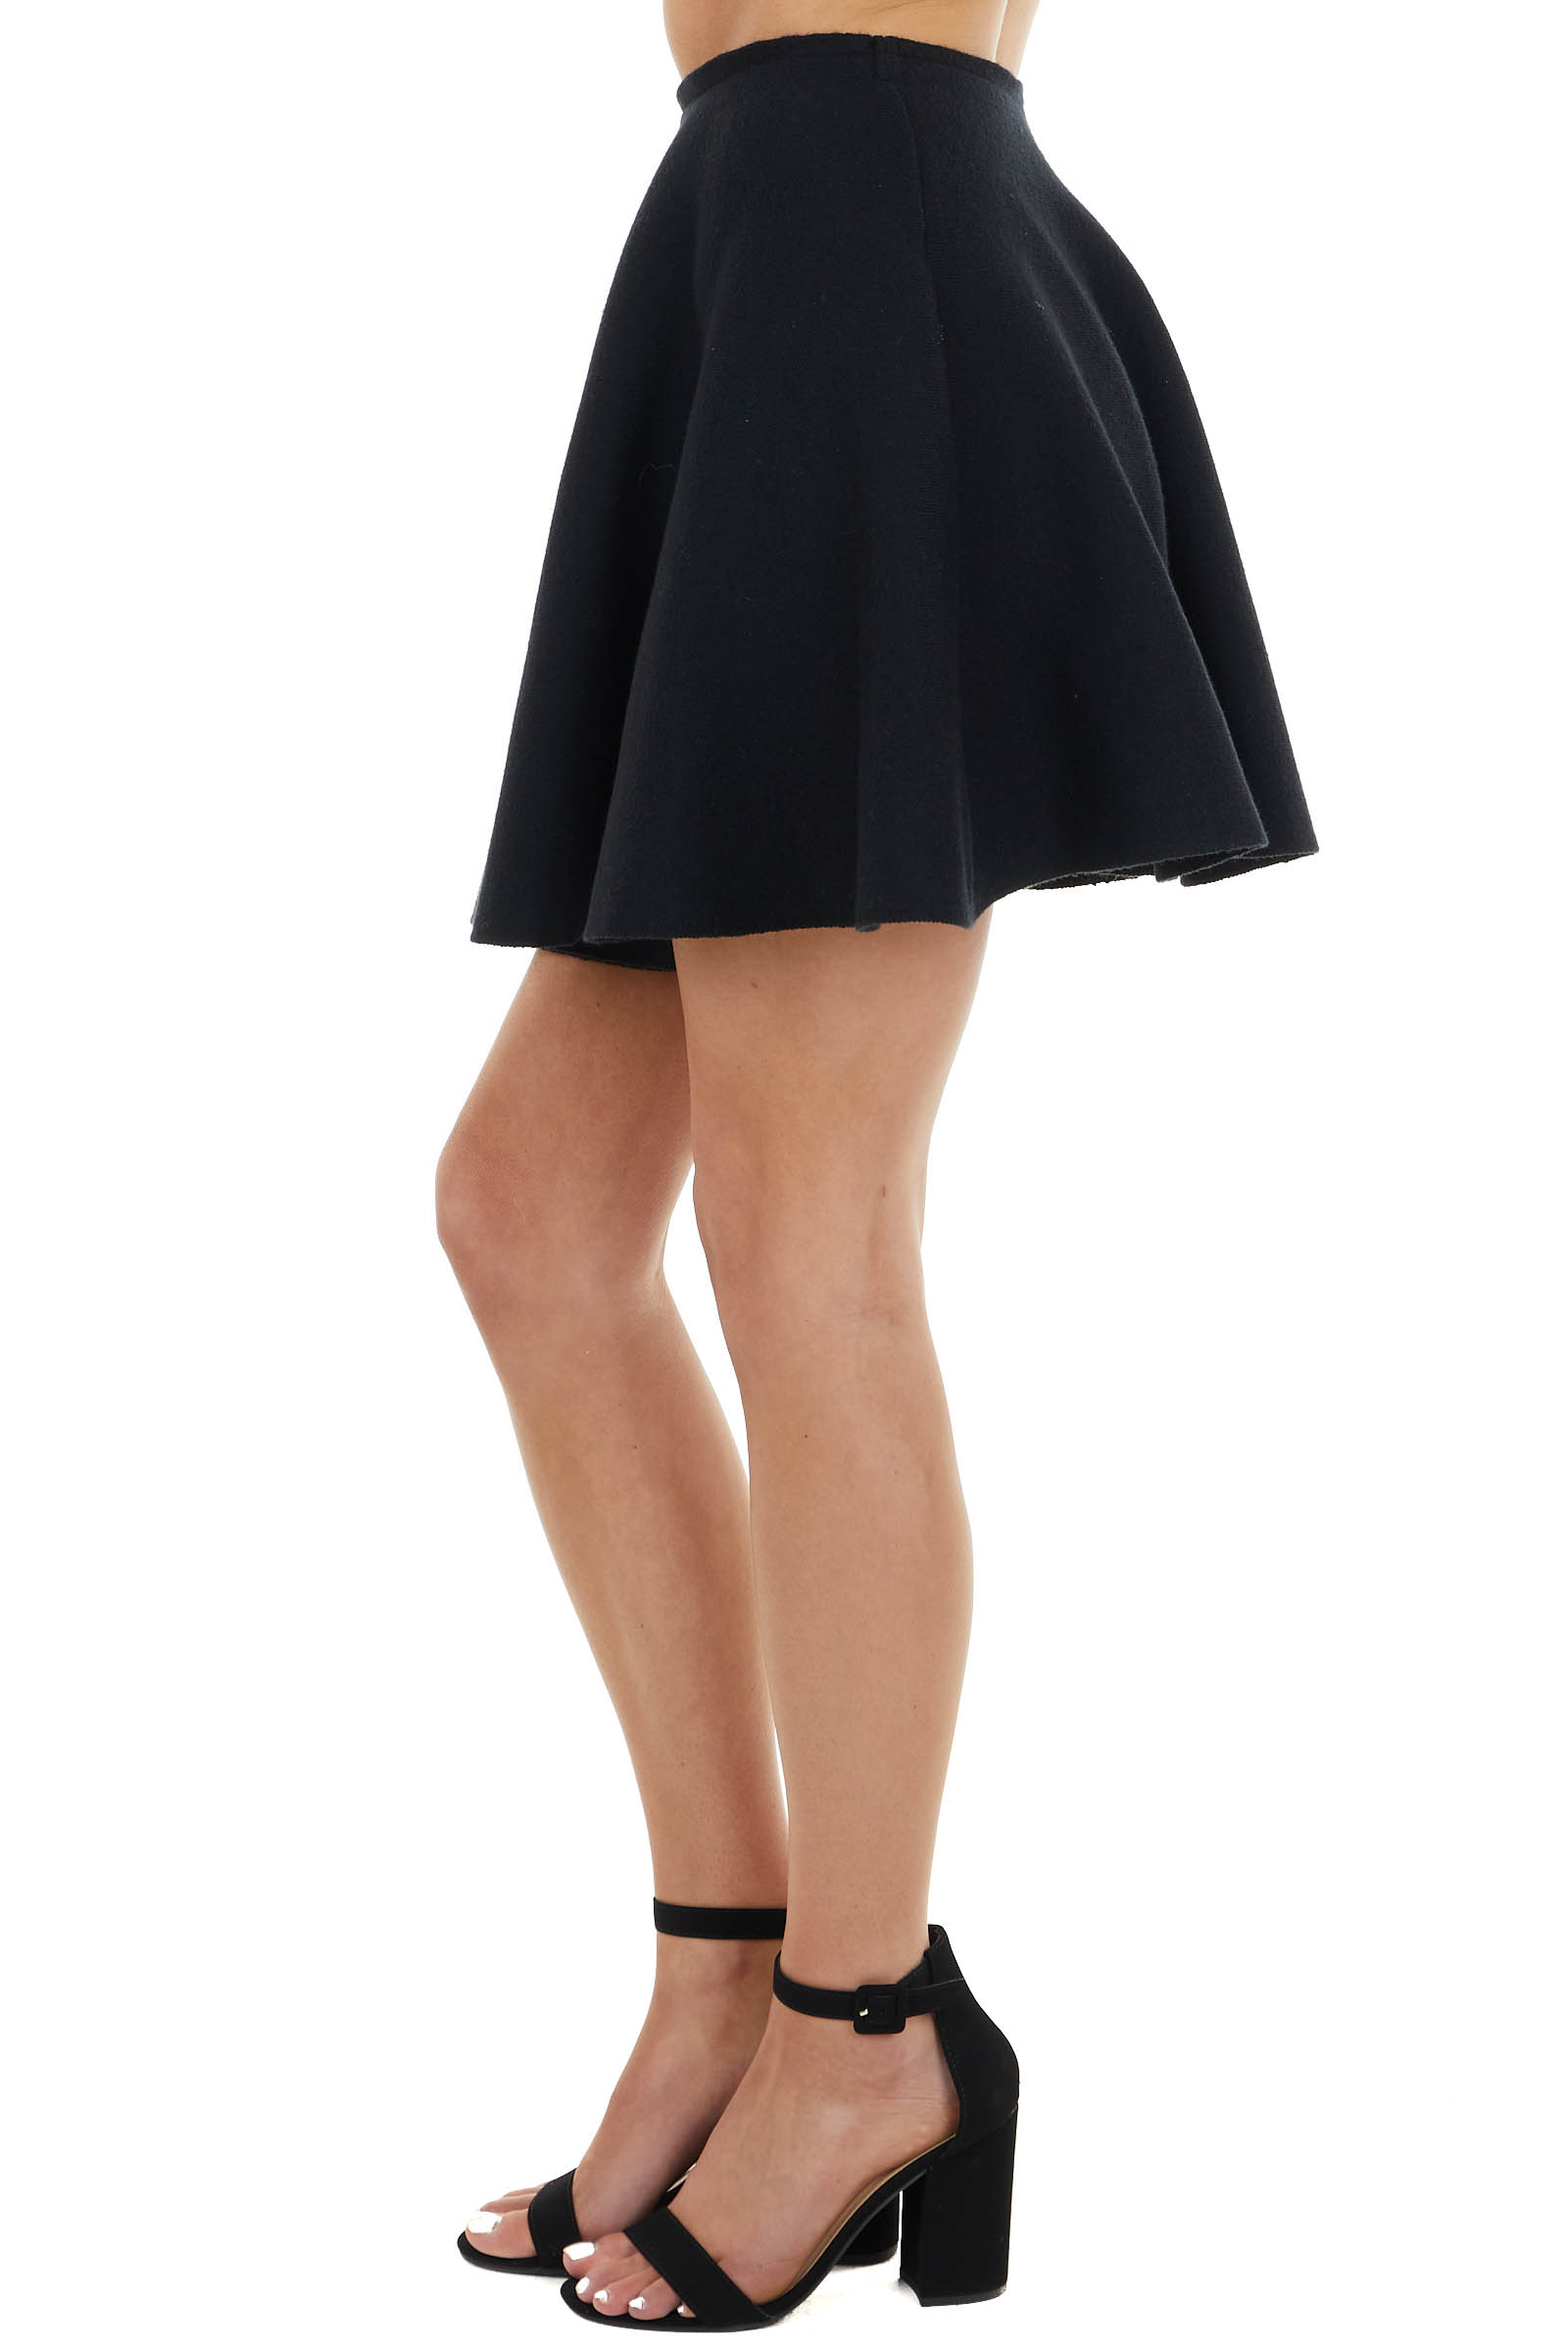 Black Knit Sweater Flare Mini Skirt with Elastic Waist